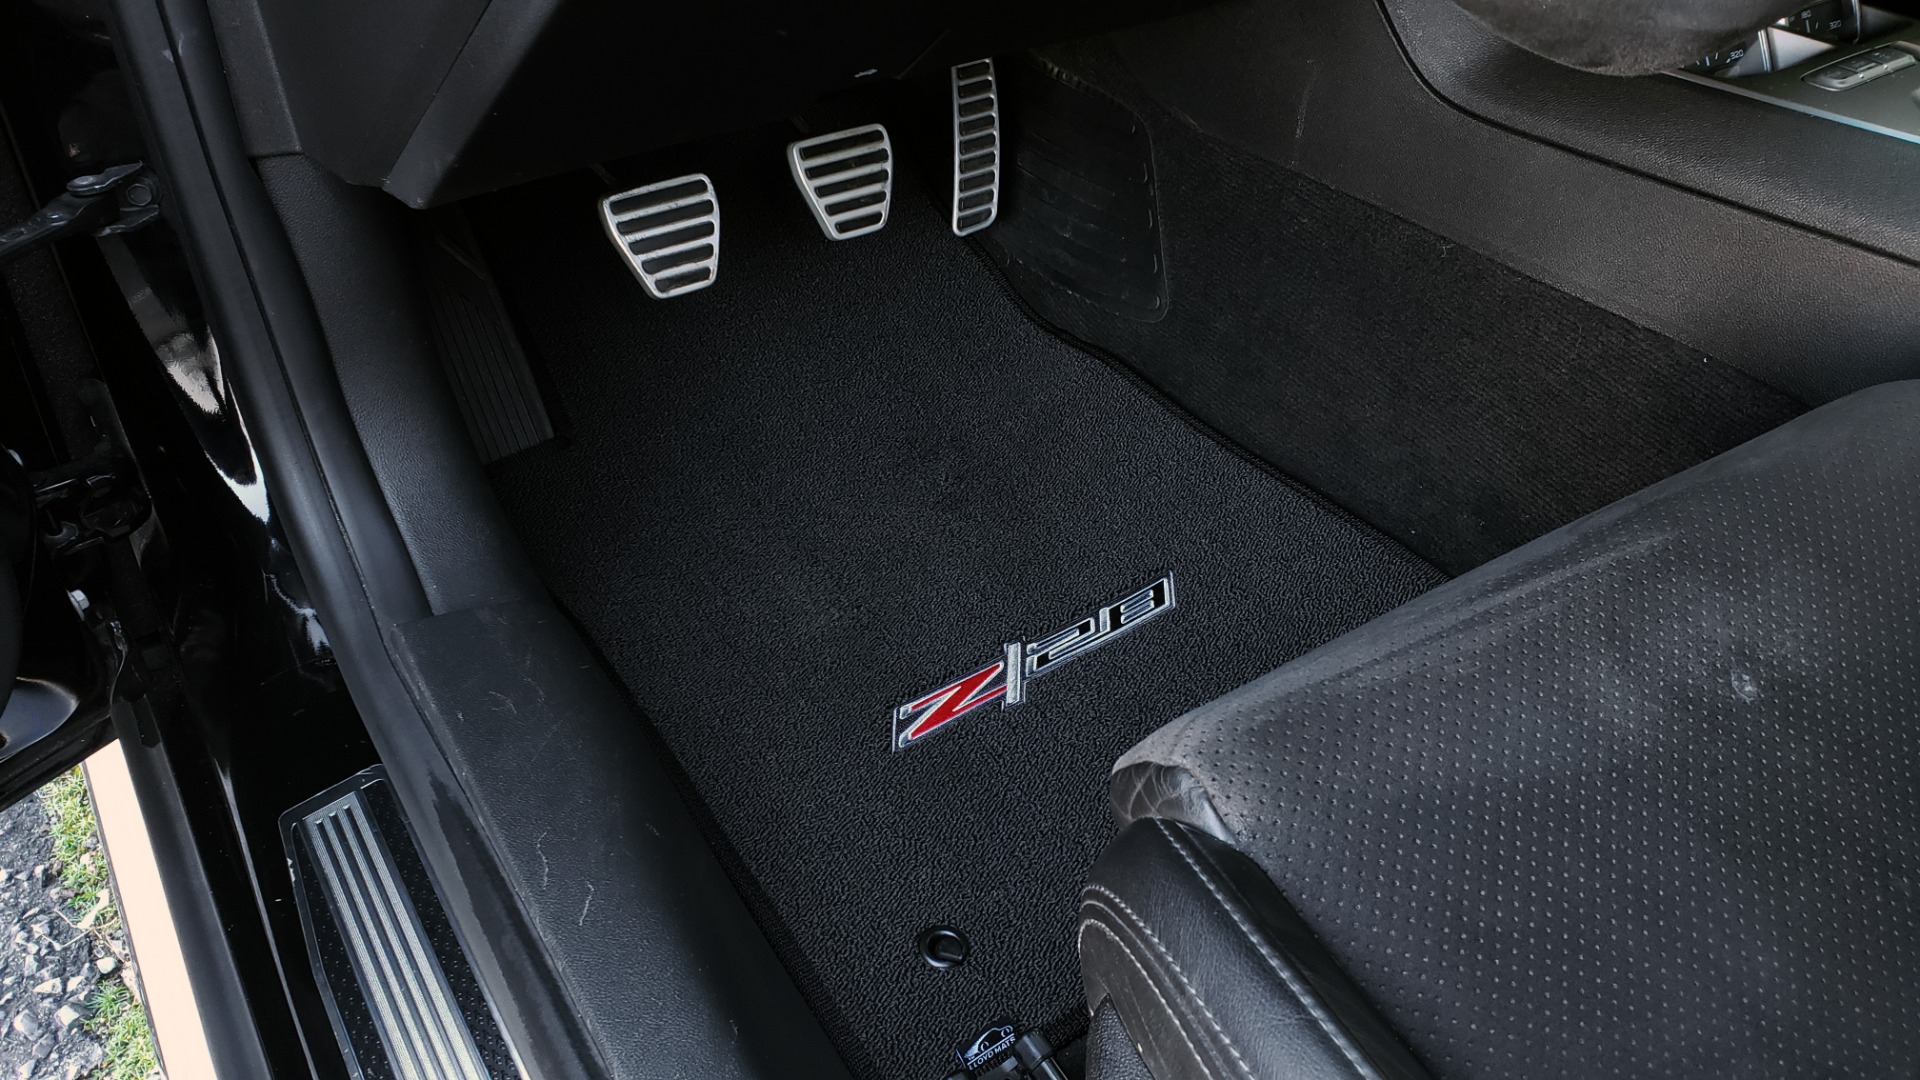 Used 2014 Chevrolet CAMARO Z/28 / 427 7.0L V8 505HP / RADIO / AIR CONDITIONING for sale Sold at Formula Imports in Charlotte NC 28227 51